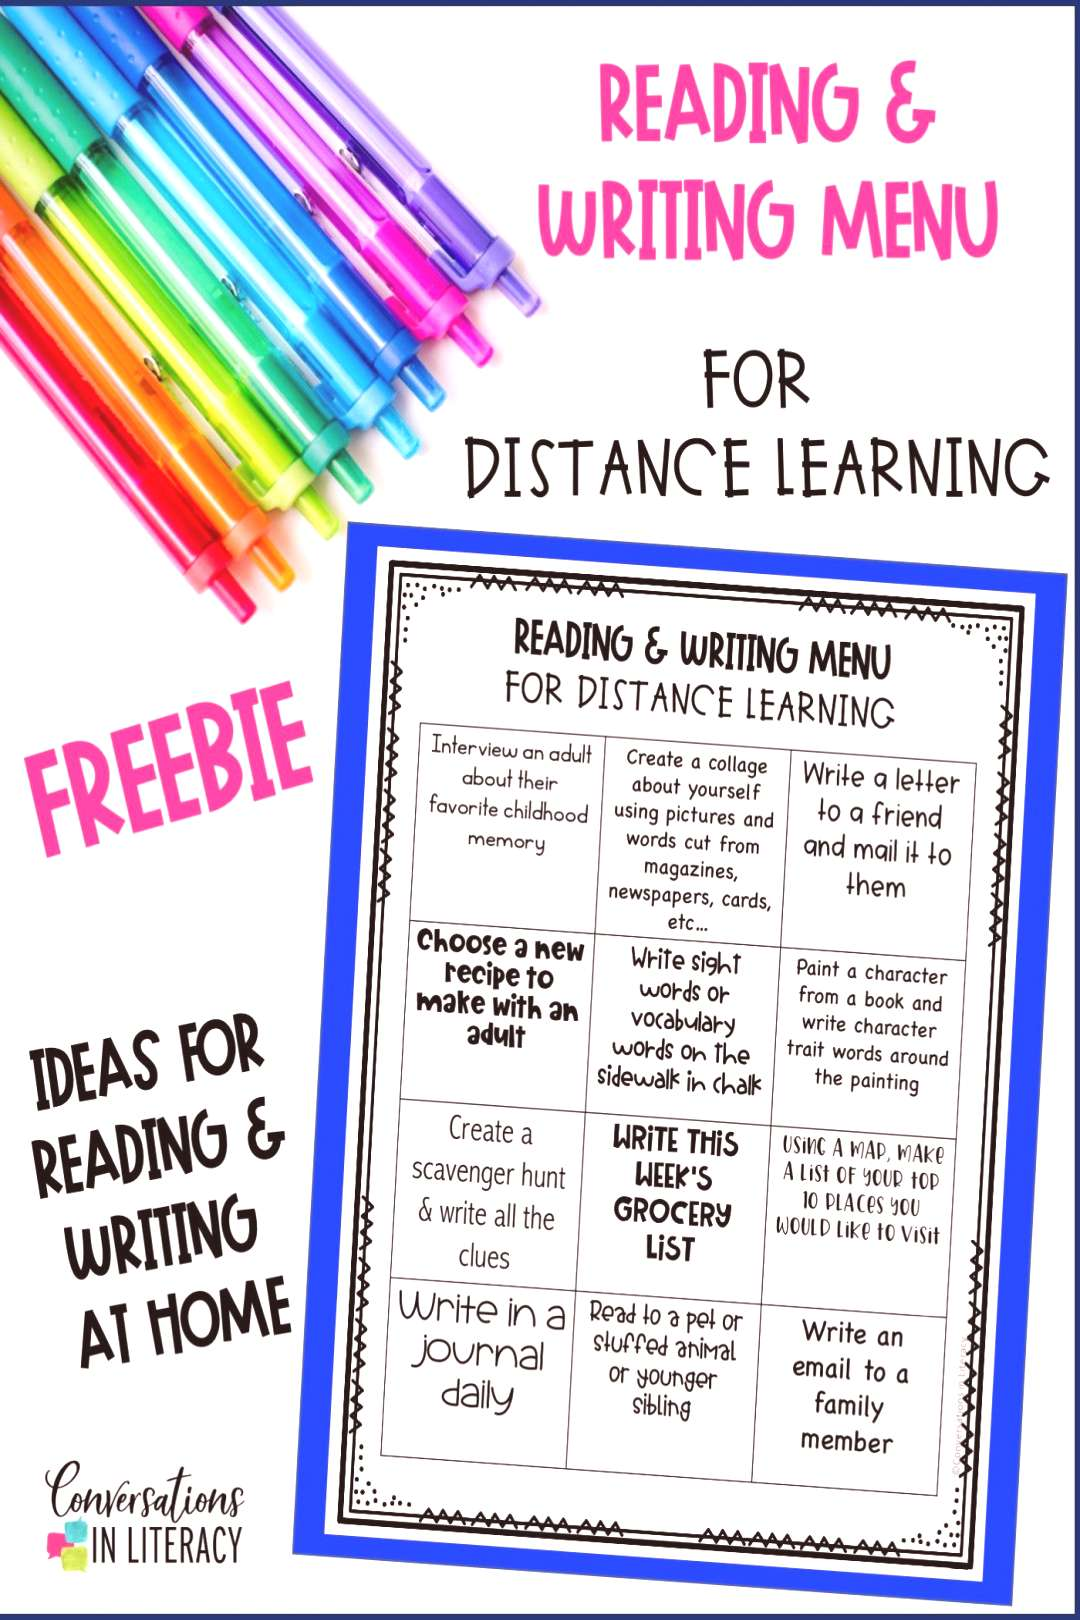 FREE Distance Learning Reading and Writing Menu FREE Distance Learning Reading and Writing Menu for